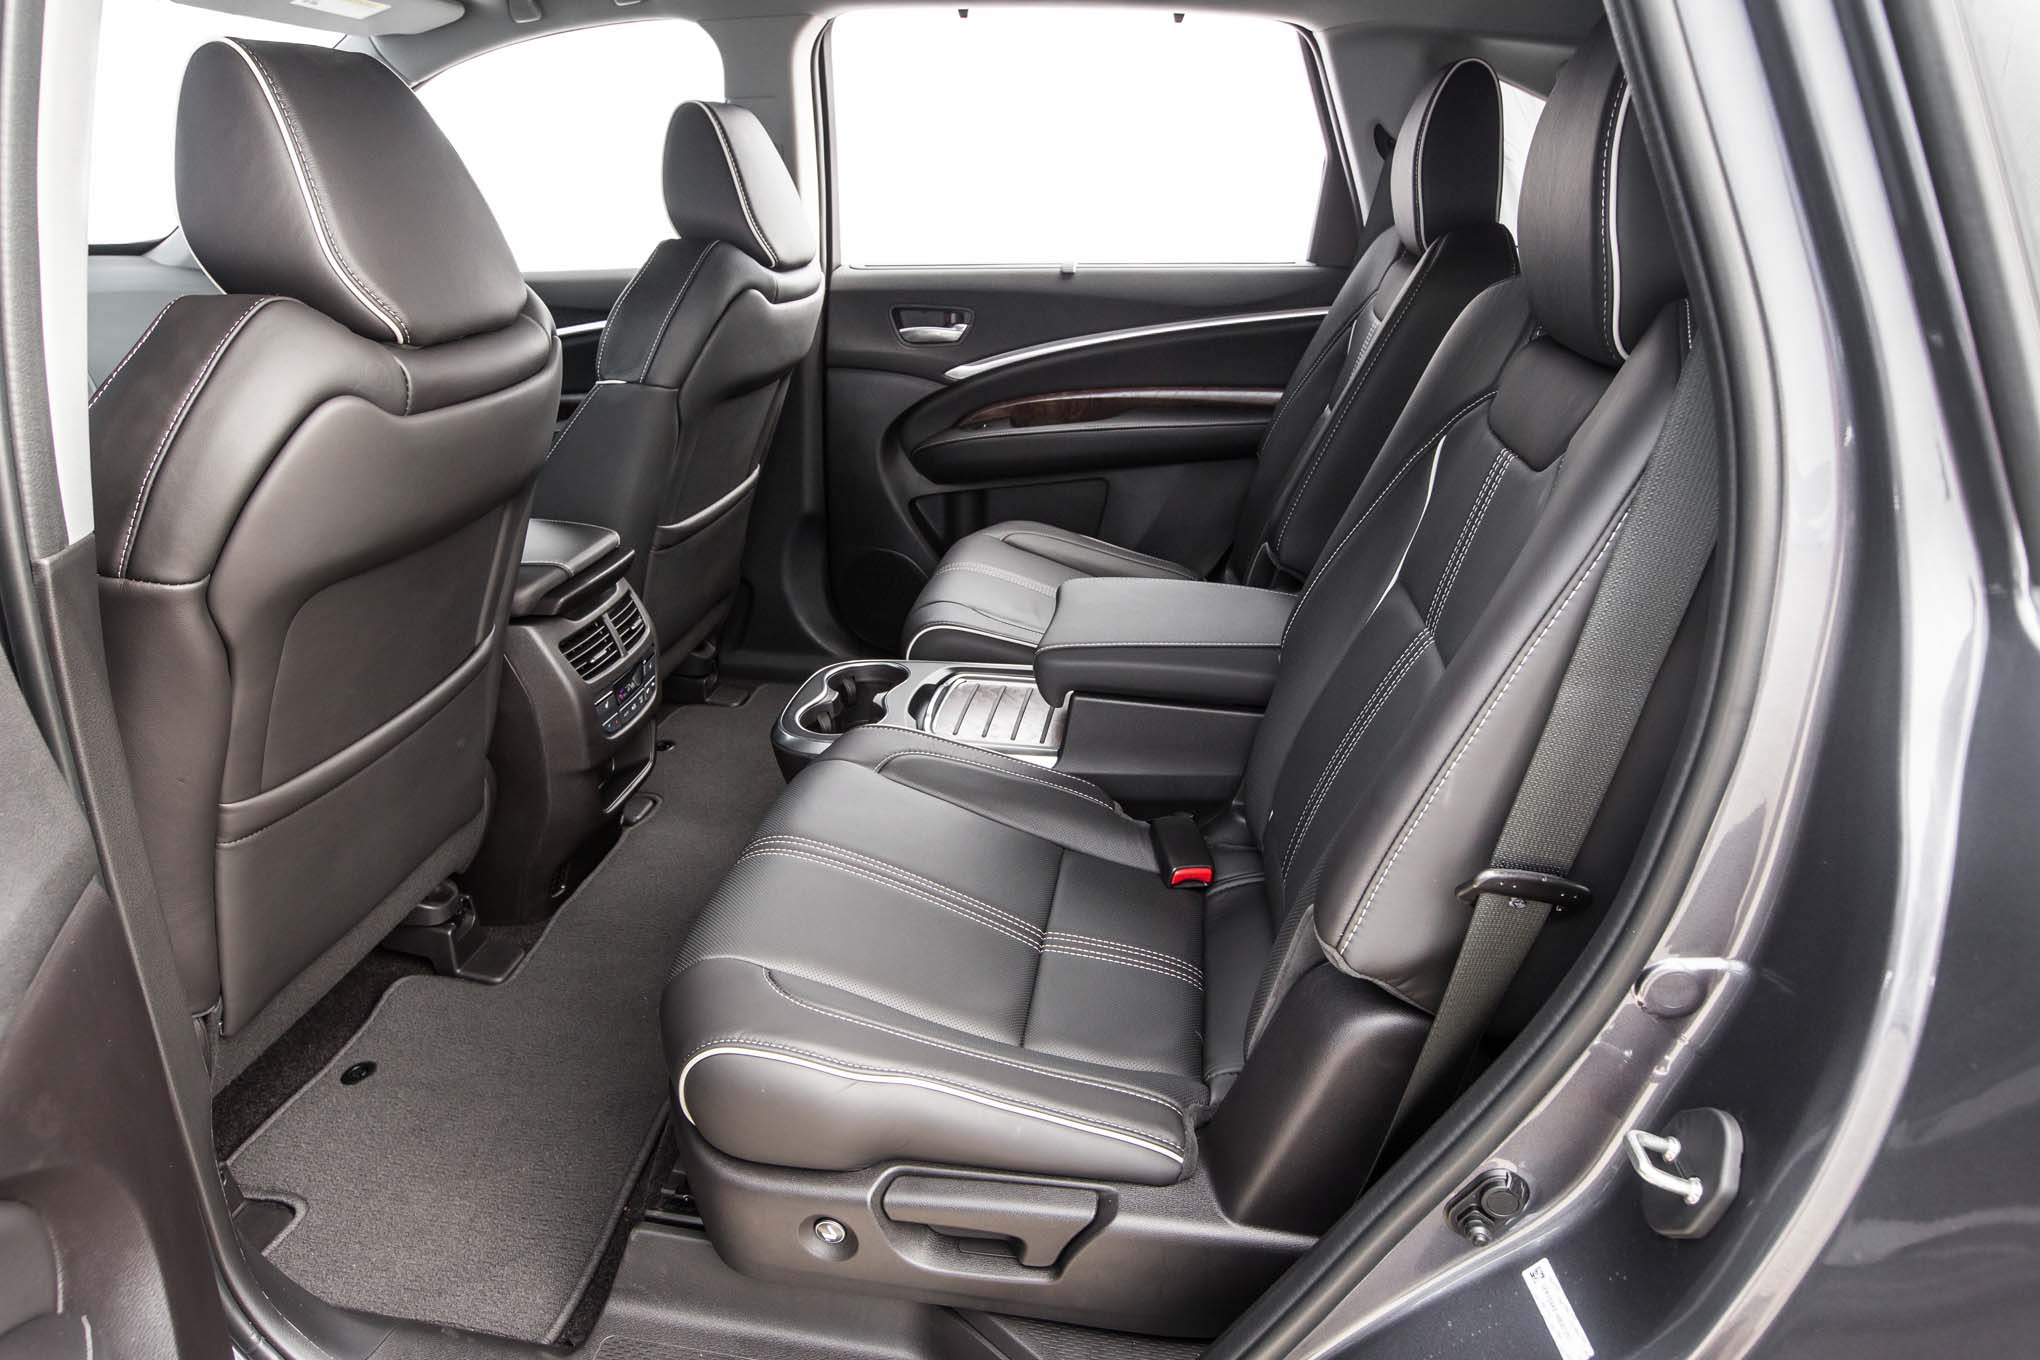 2017 Acura Mdx Sh Awd Rear Interior Seats